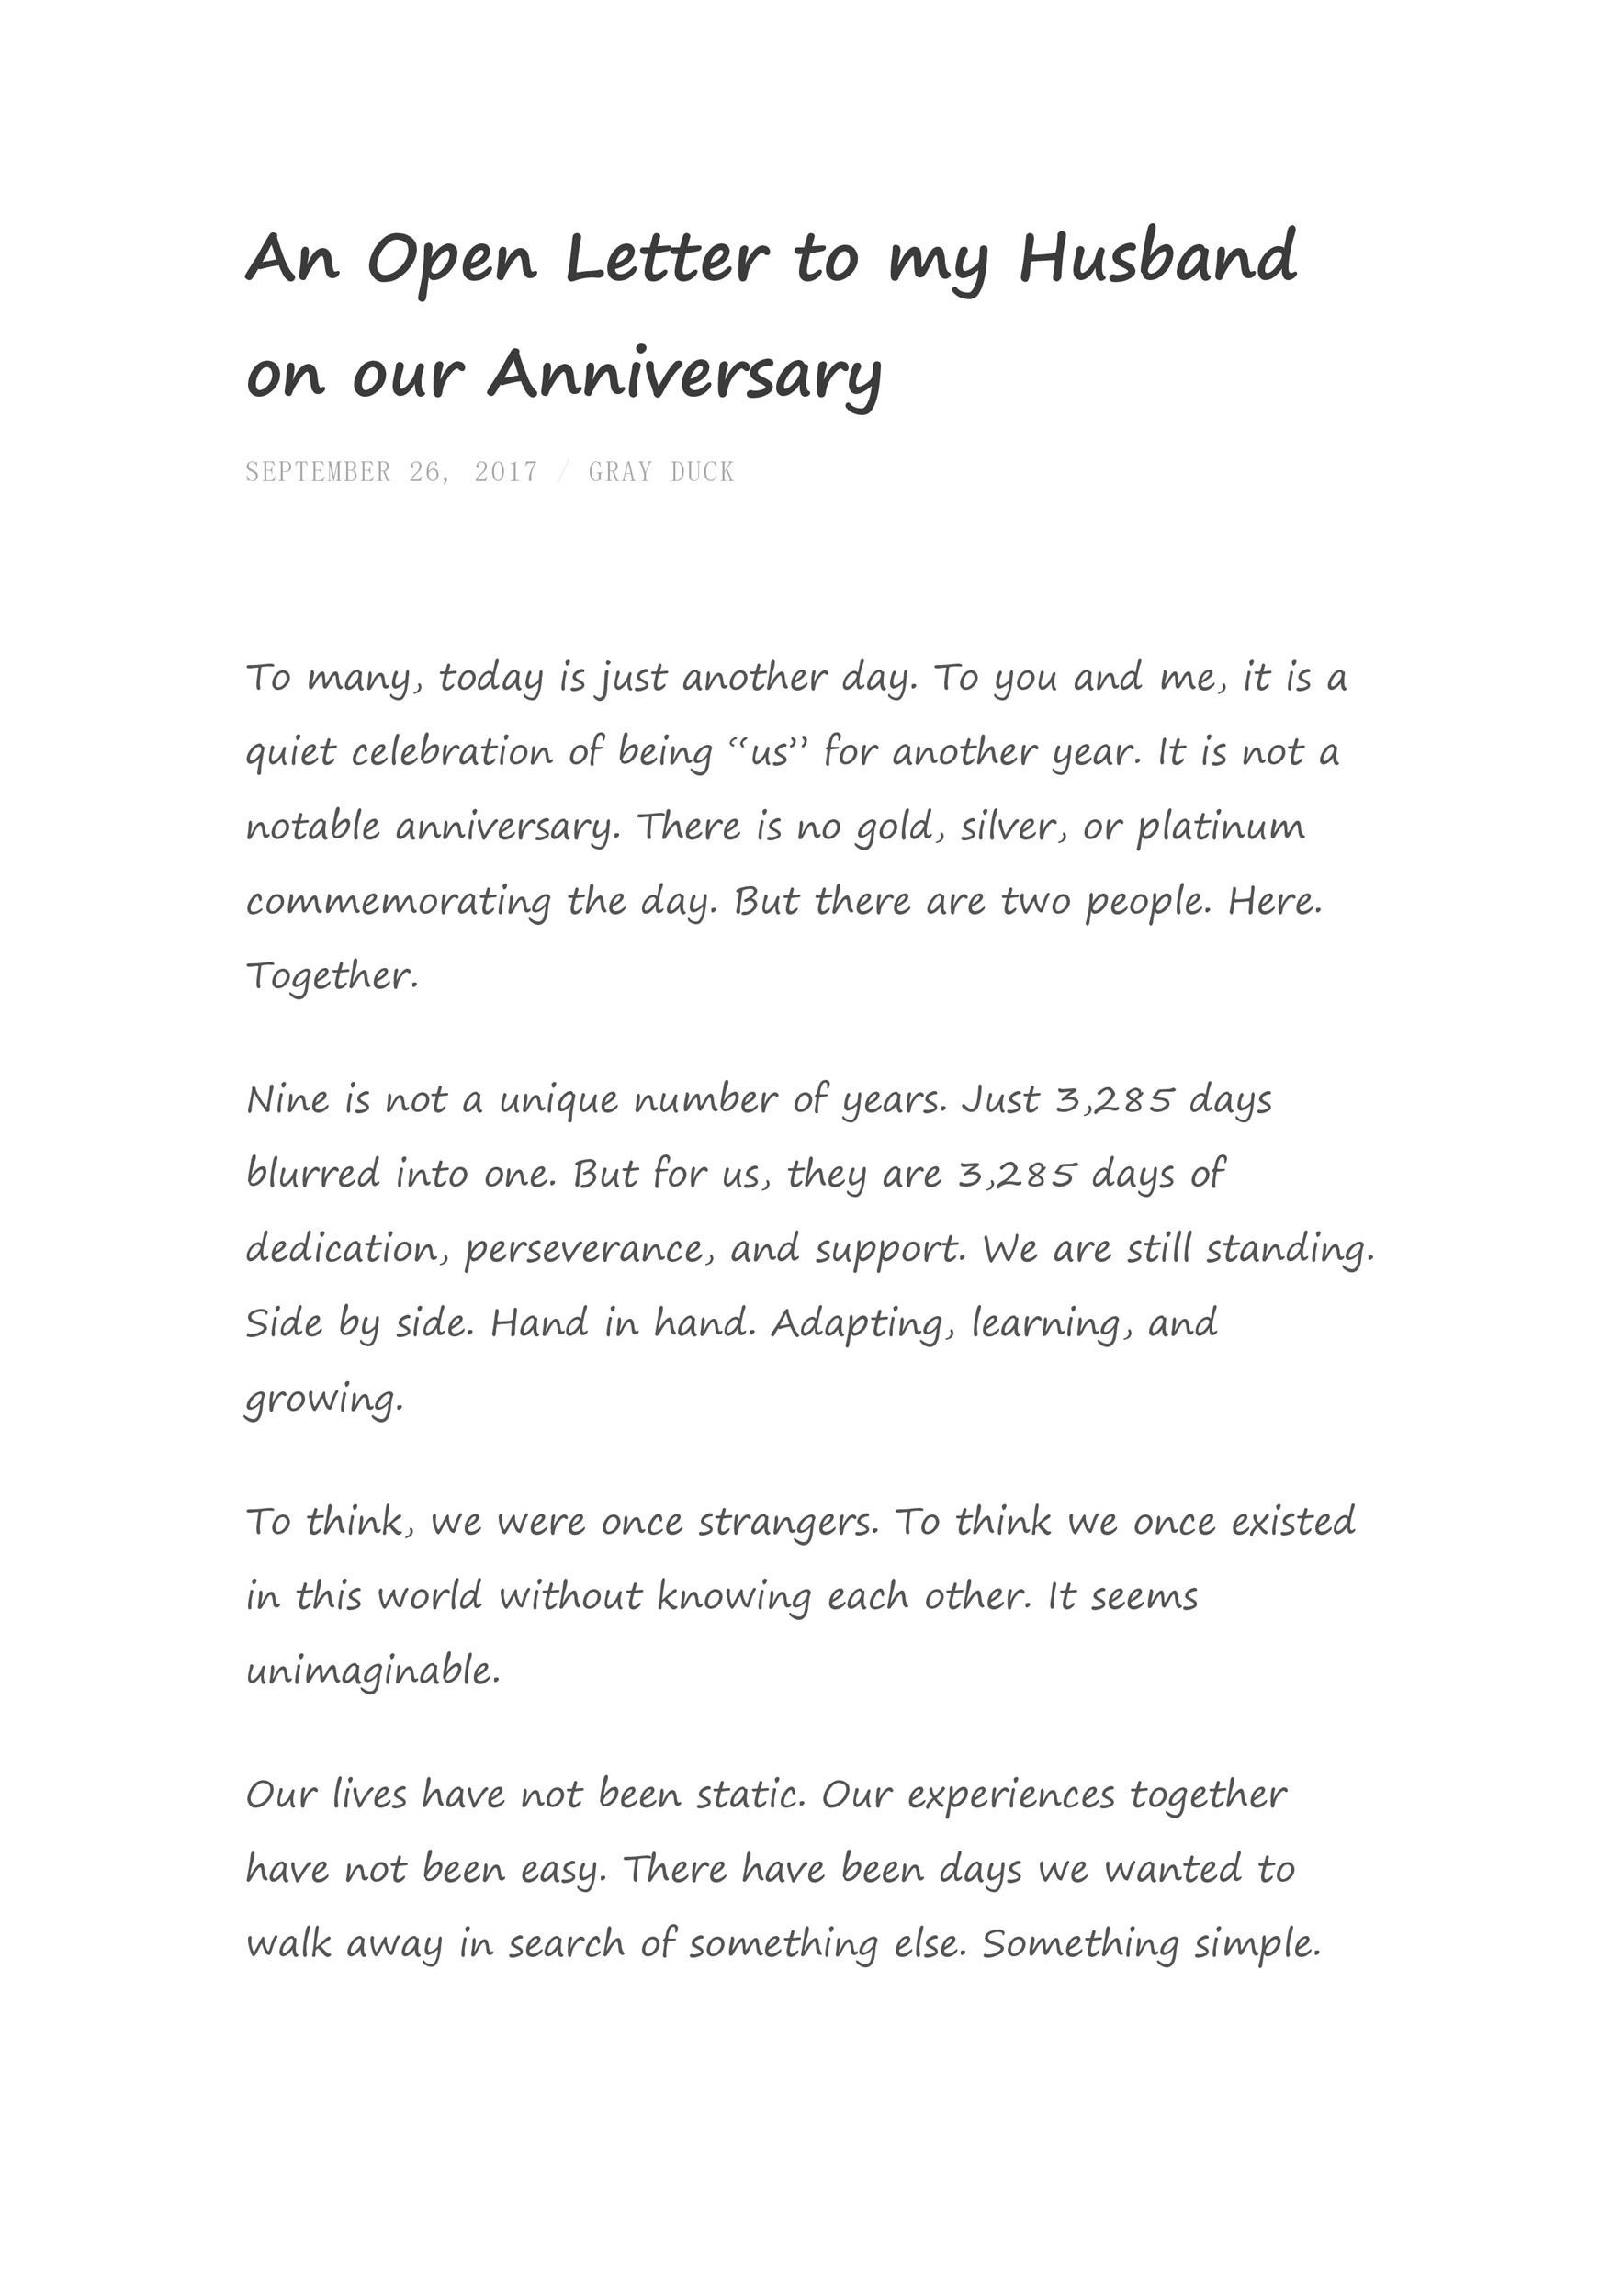 1 Year Anniversary Letter from templatelab.com